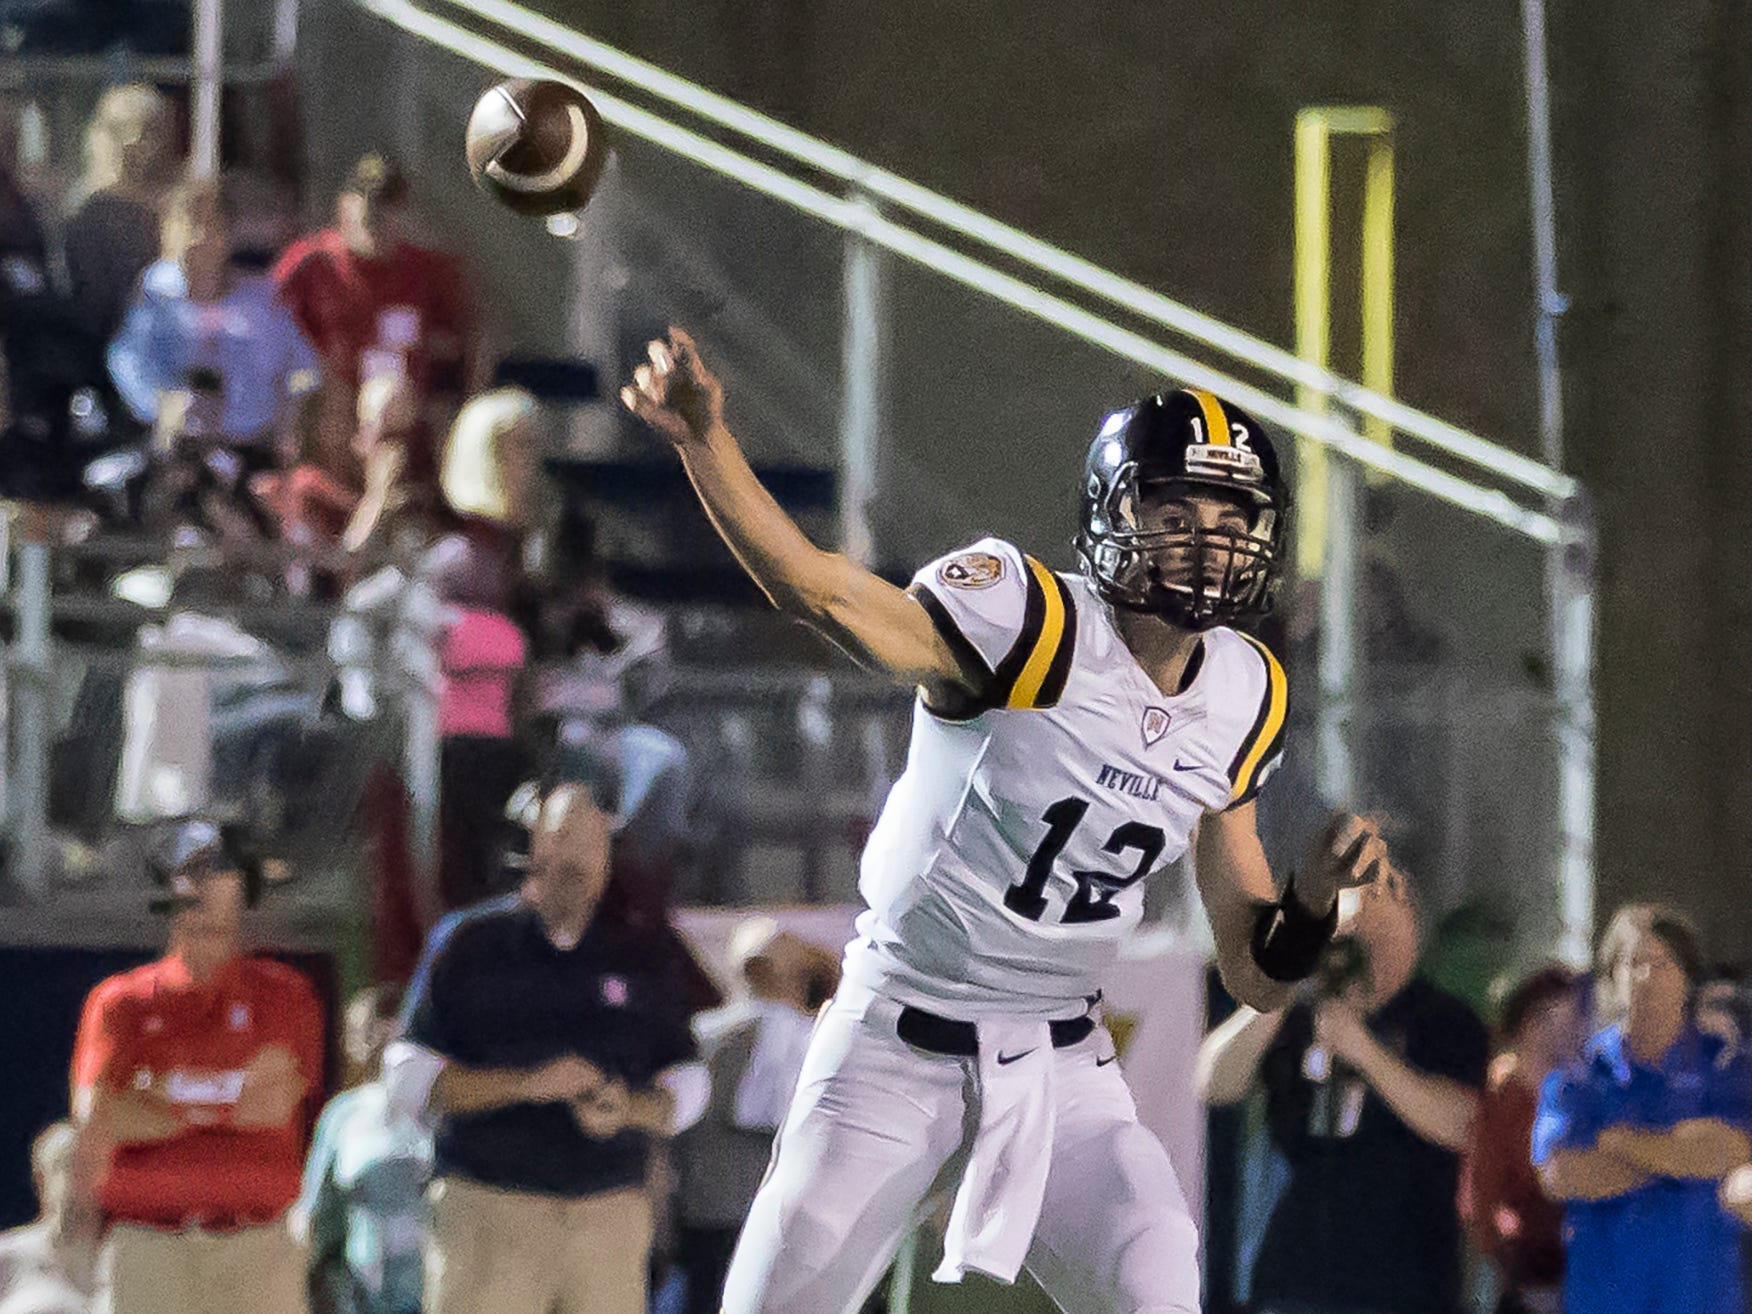 West Monroe defeated Neville 29-14 at Don Shows Stadium at West Monroe High School in West Monroe, La. on Sept. 28.